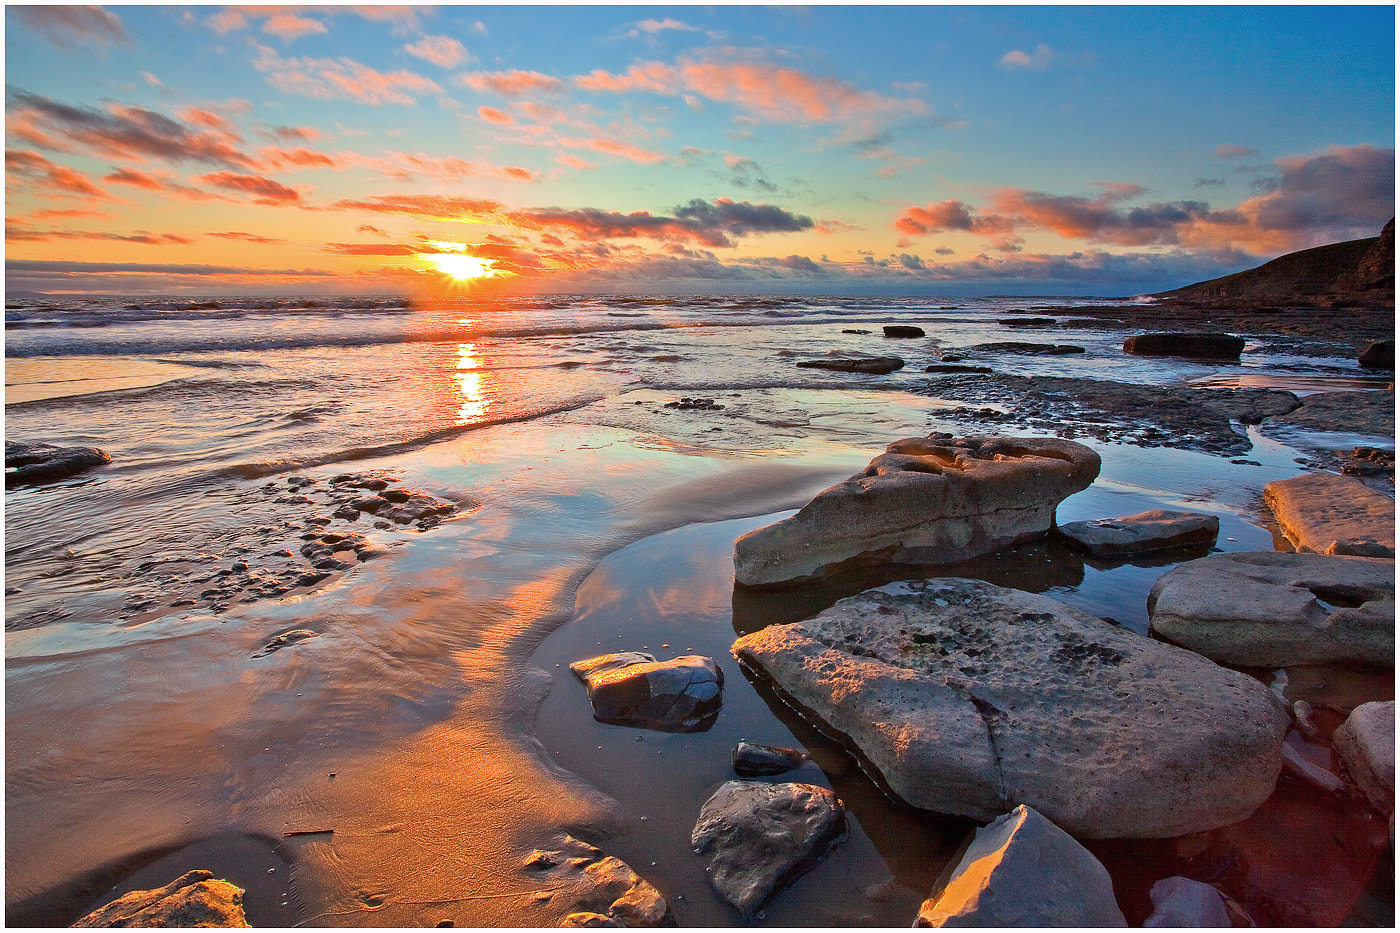 Photograph Sunset on Dunraven by Alan Coles on 500px